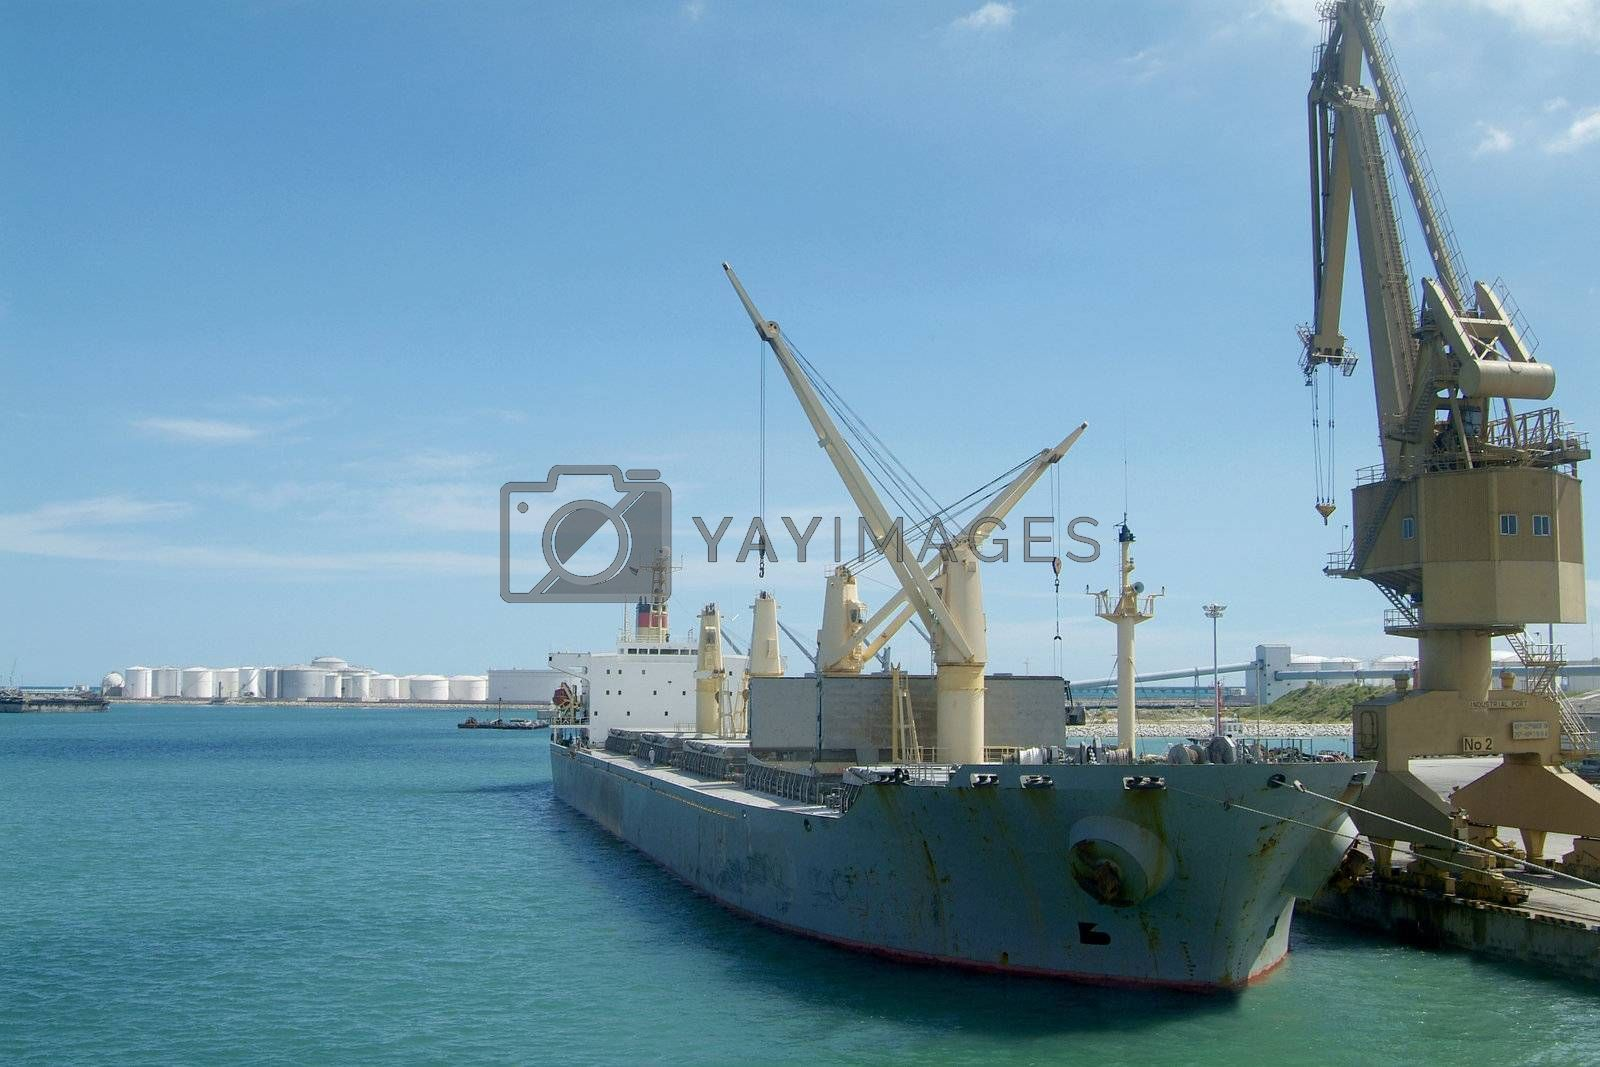 Royalty free image of Ship at port by epixx